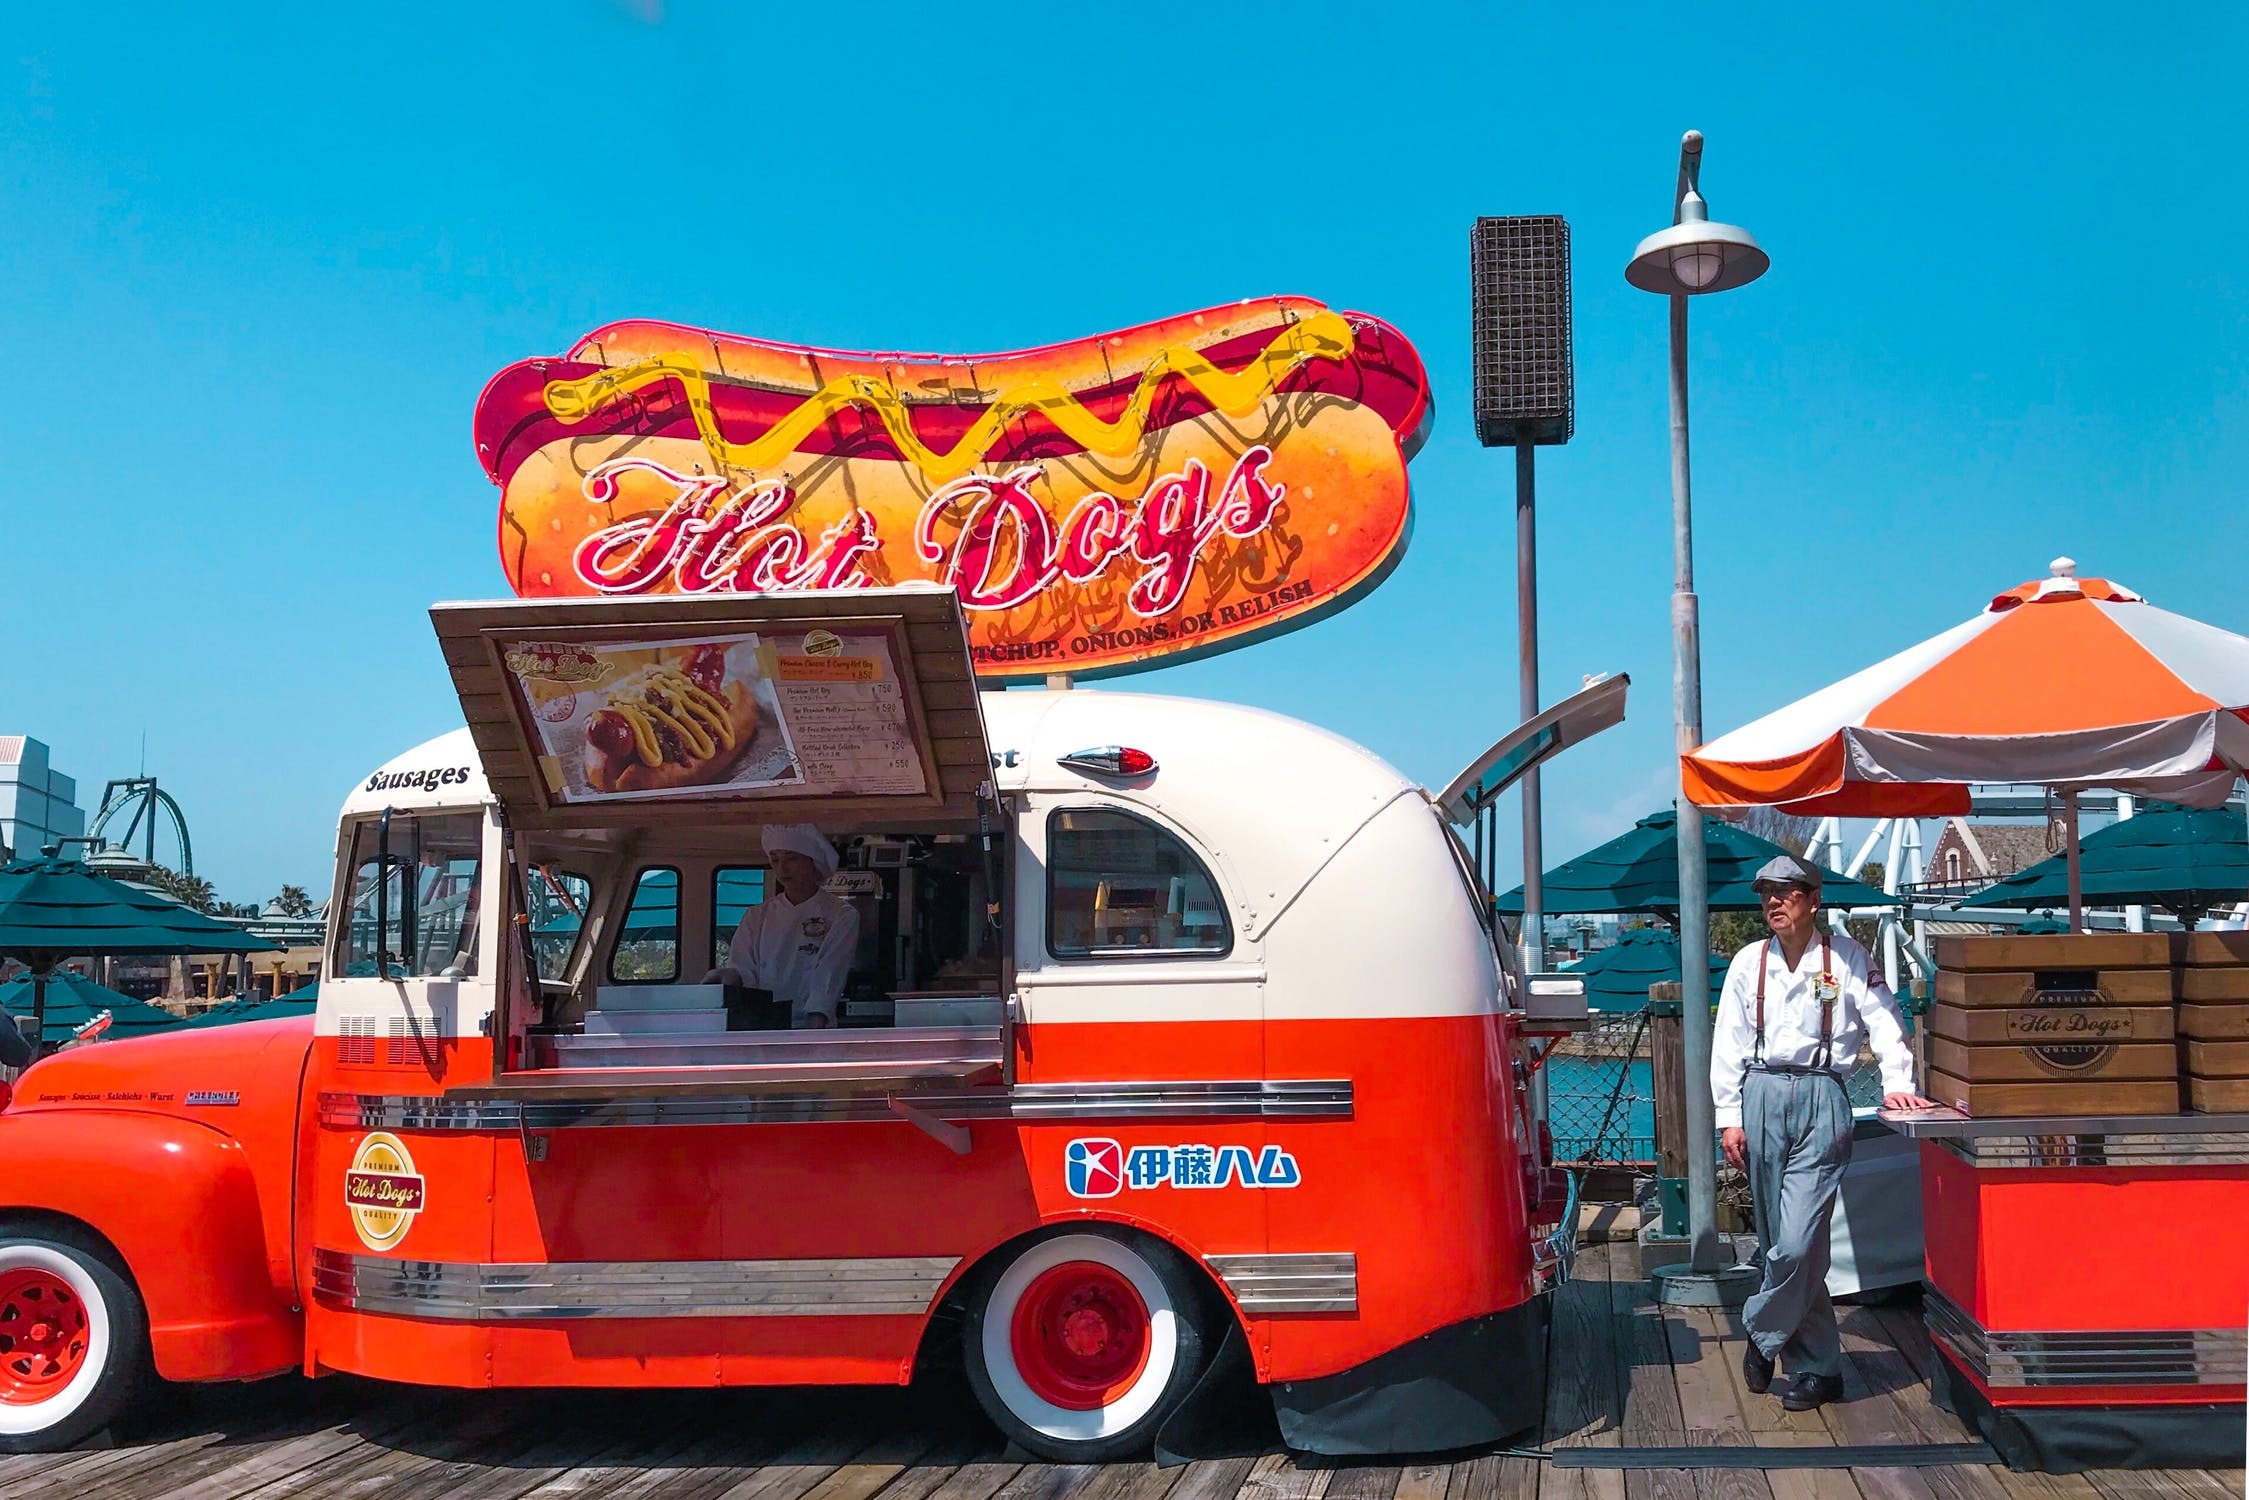 Food truck with hot dogs